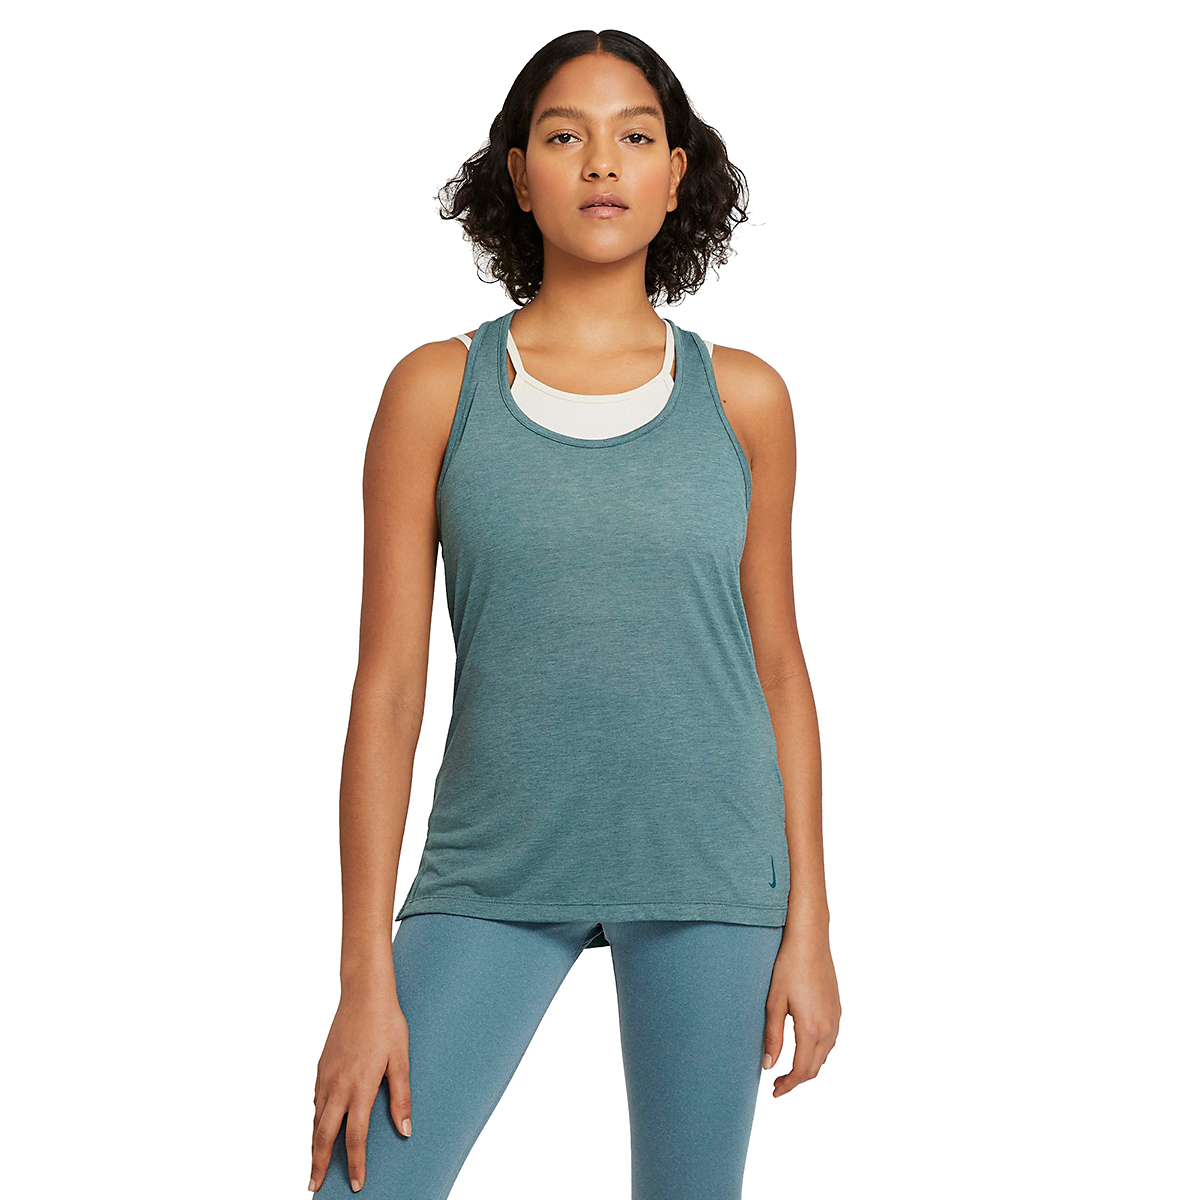 Women's Nike Yoga Layer Tank - Color: Hasta/Heather/Light Pumice/Dark Teal Green - Size: XS, Hasta/Heather/Light Pumice/Dark Teal Green, large, image 1